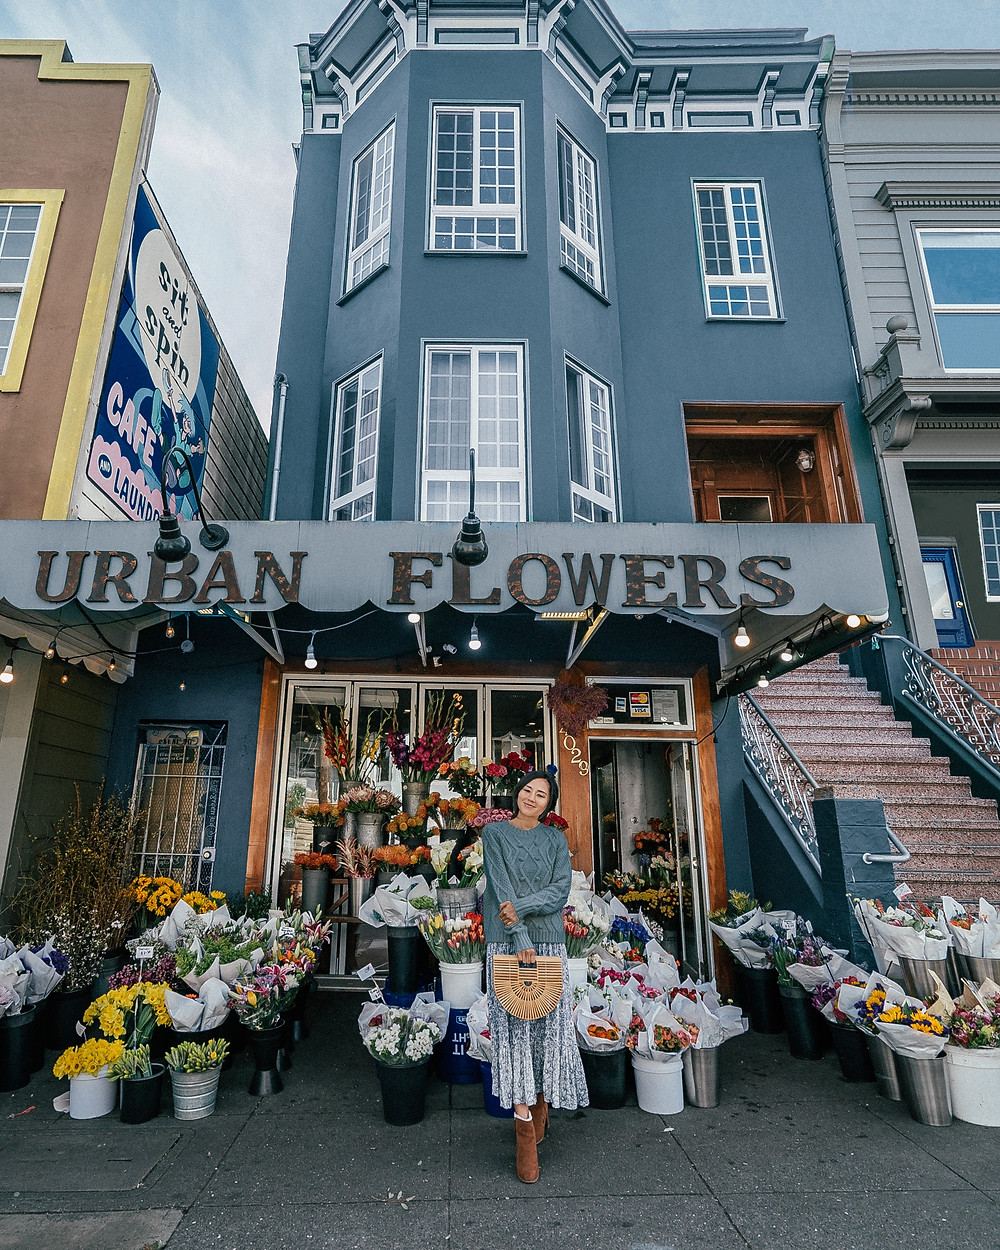 Urban Flowers, San Francisco, California